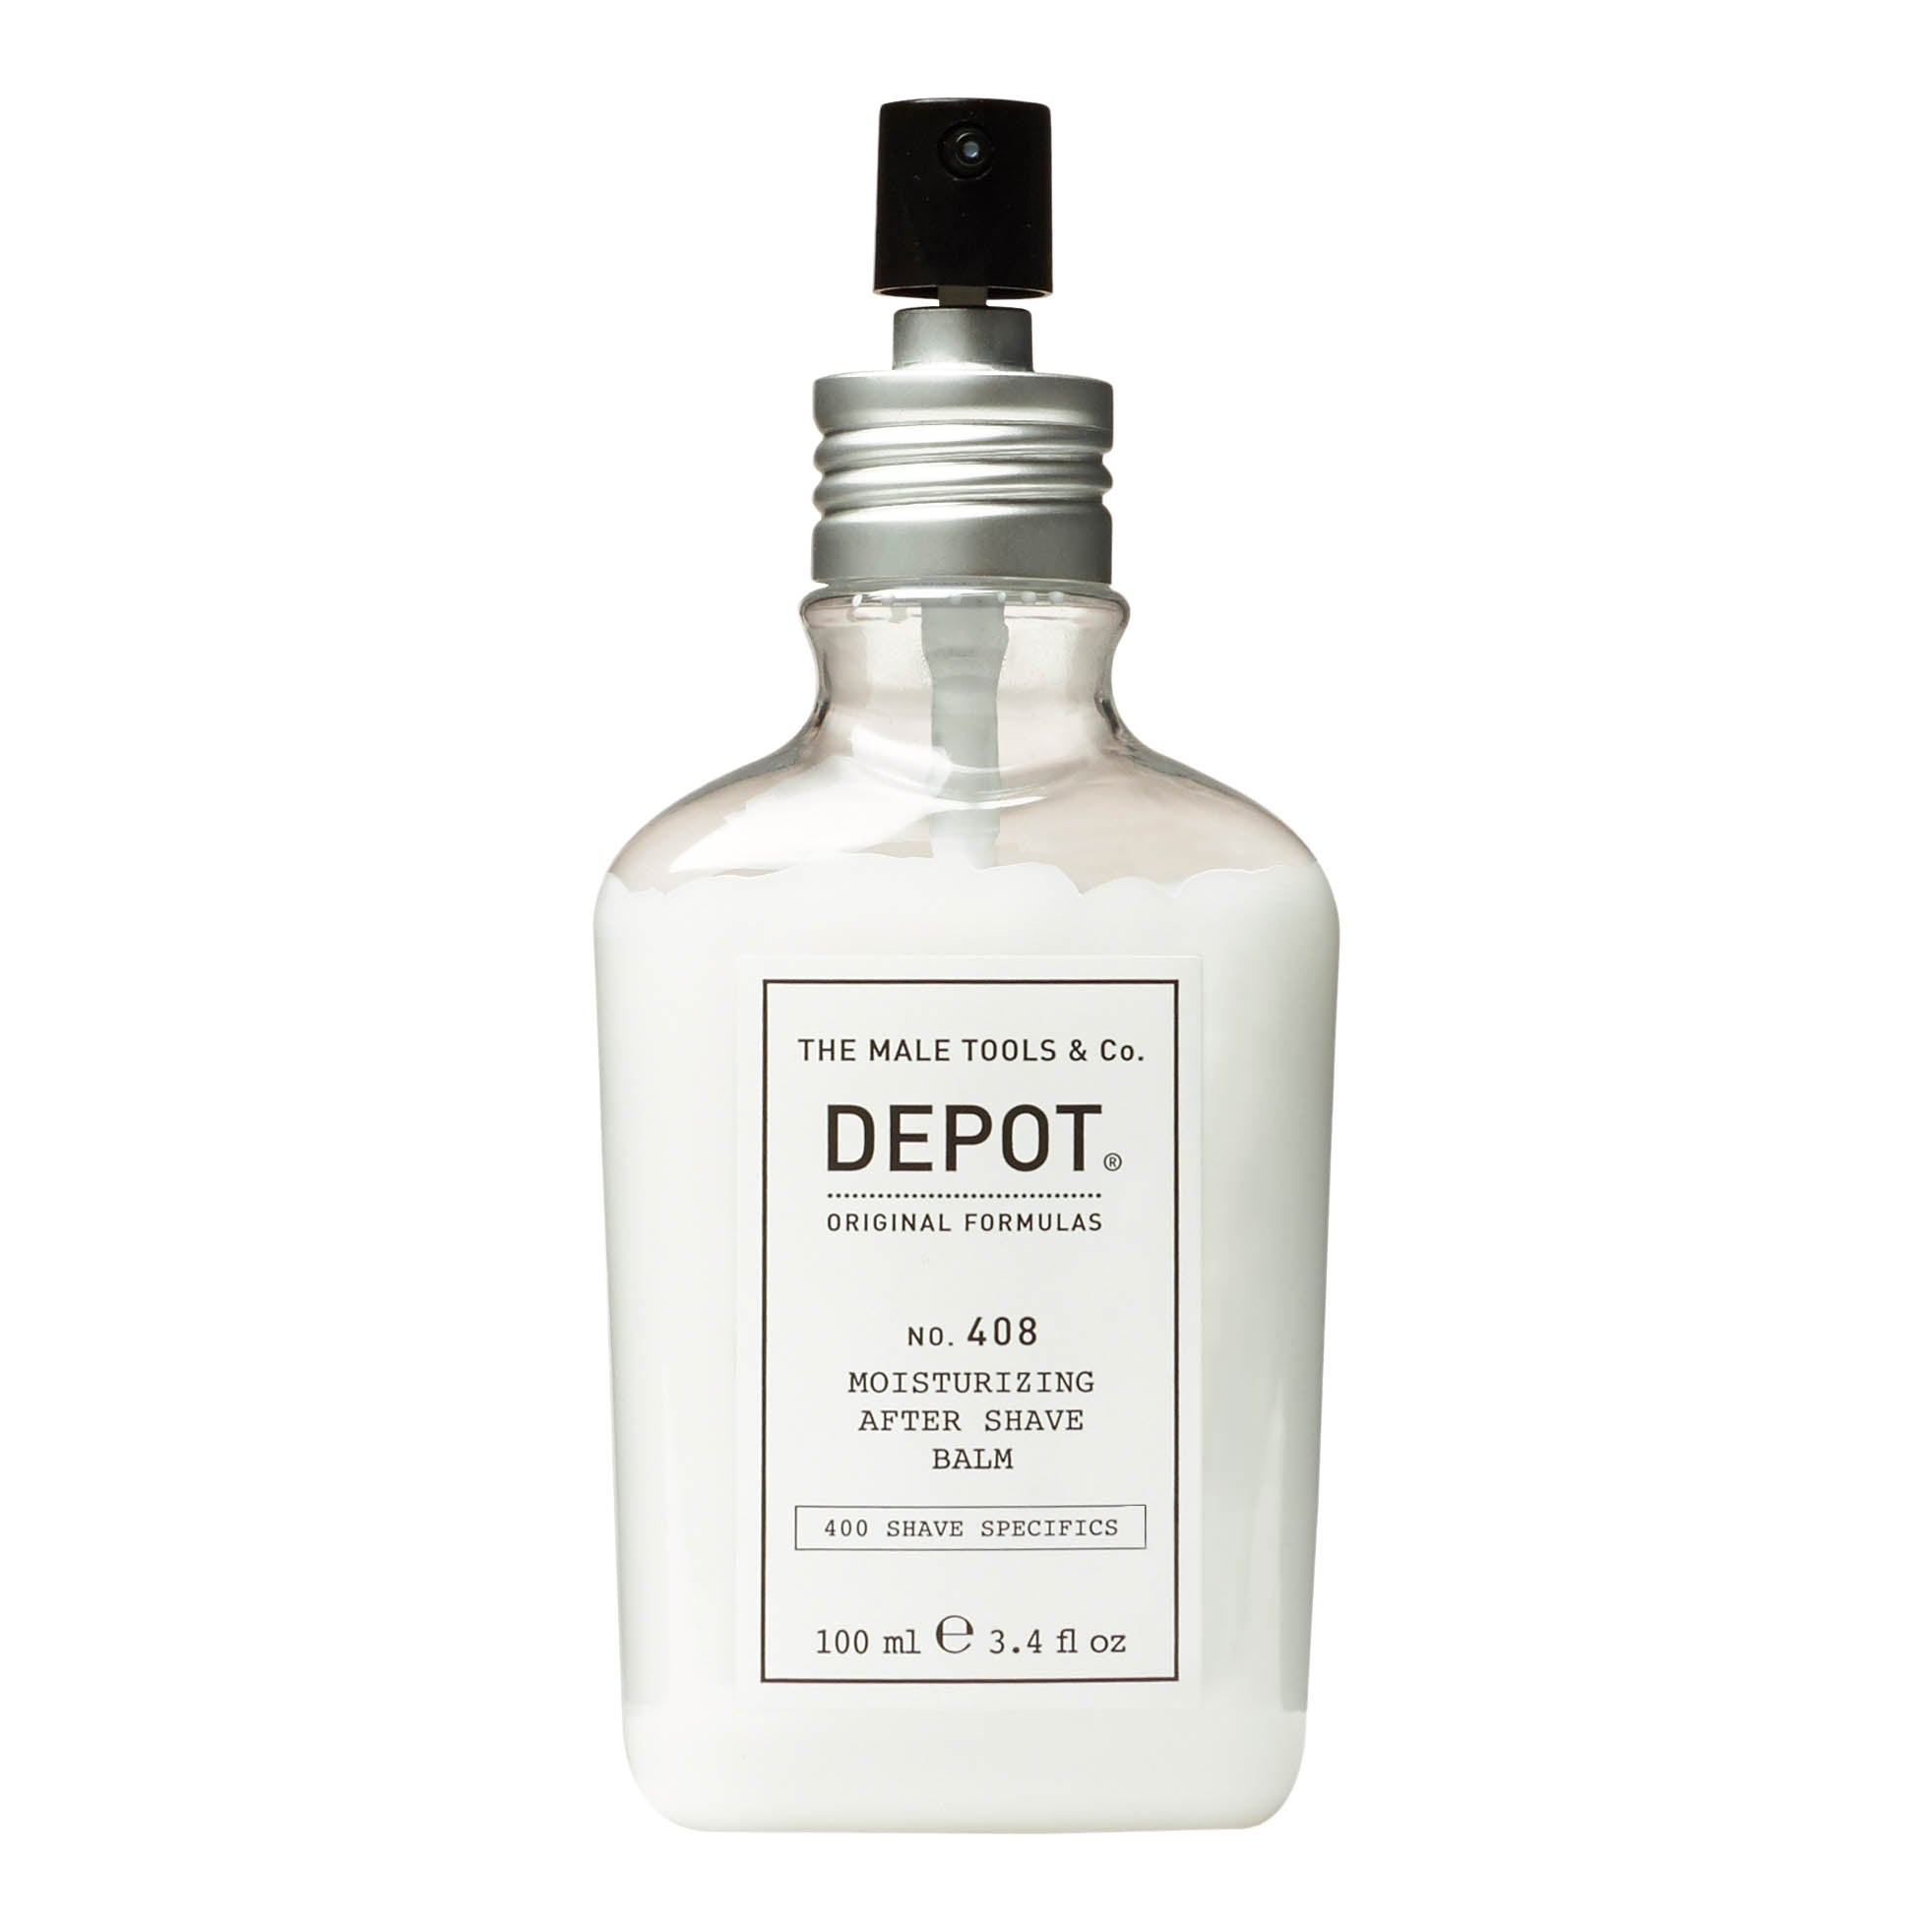 Depot No. 408 Moisturizing After Shave Balm - Fresh Black Pepper